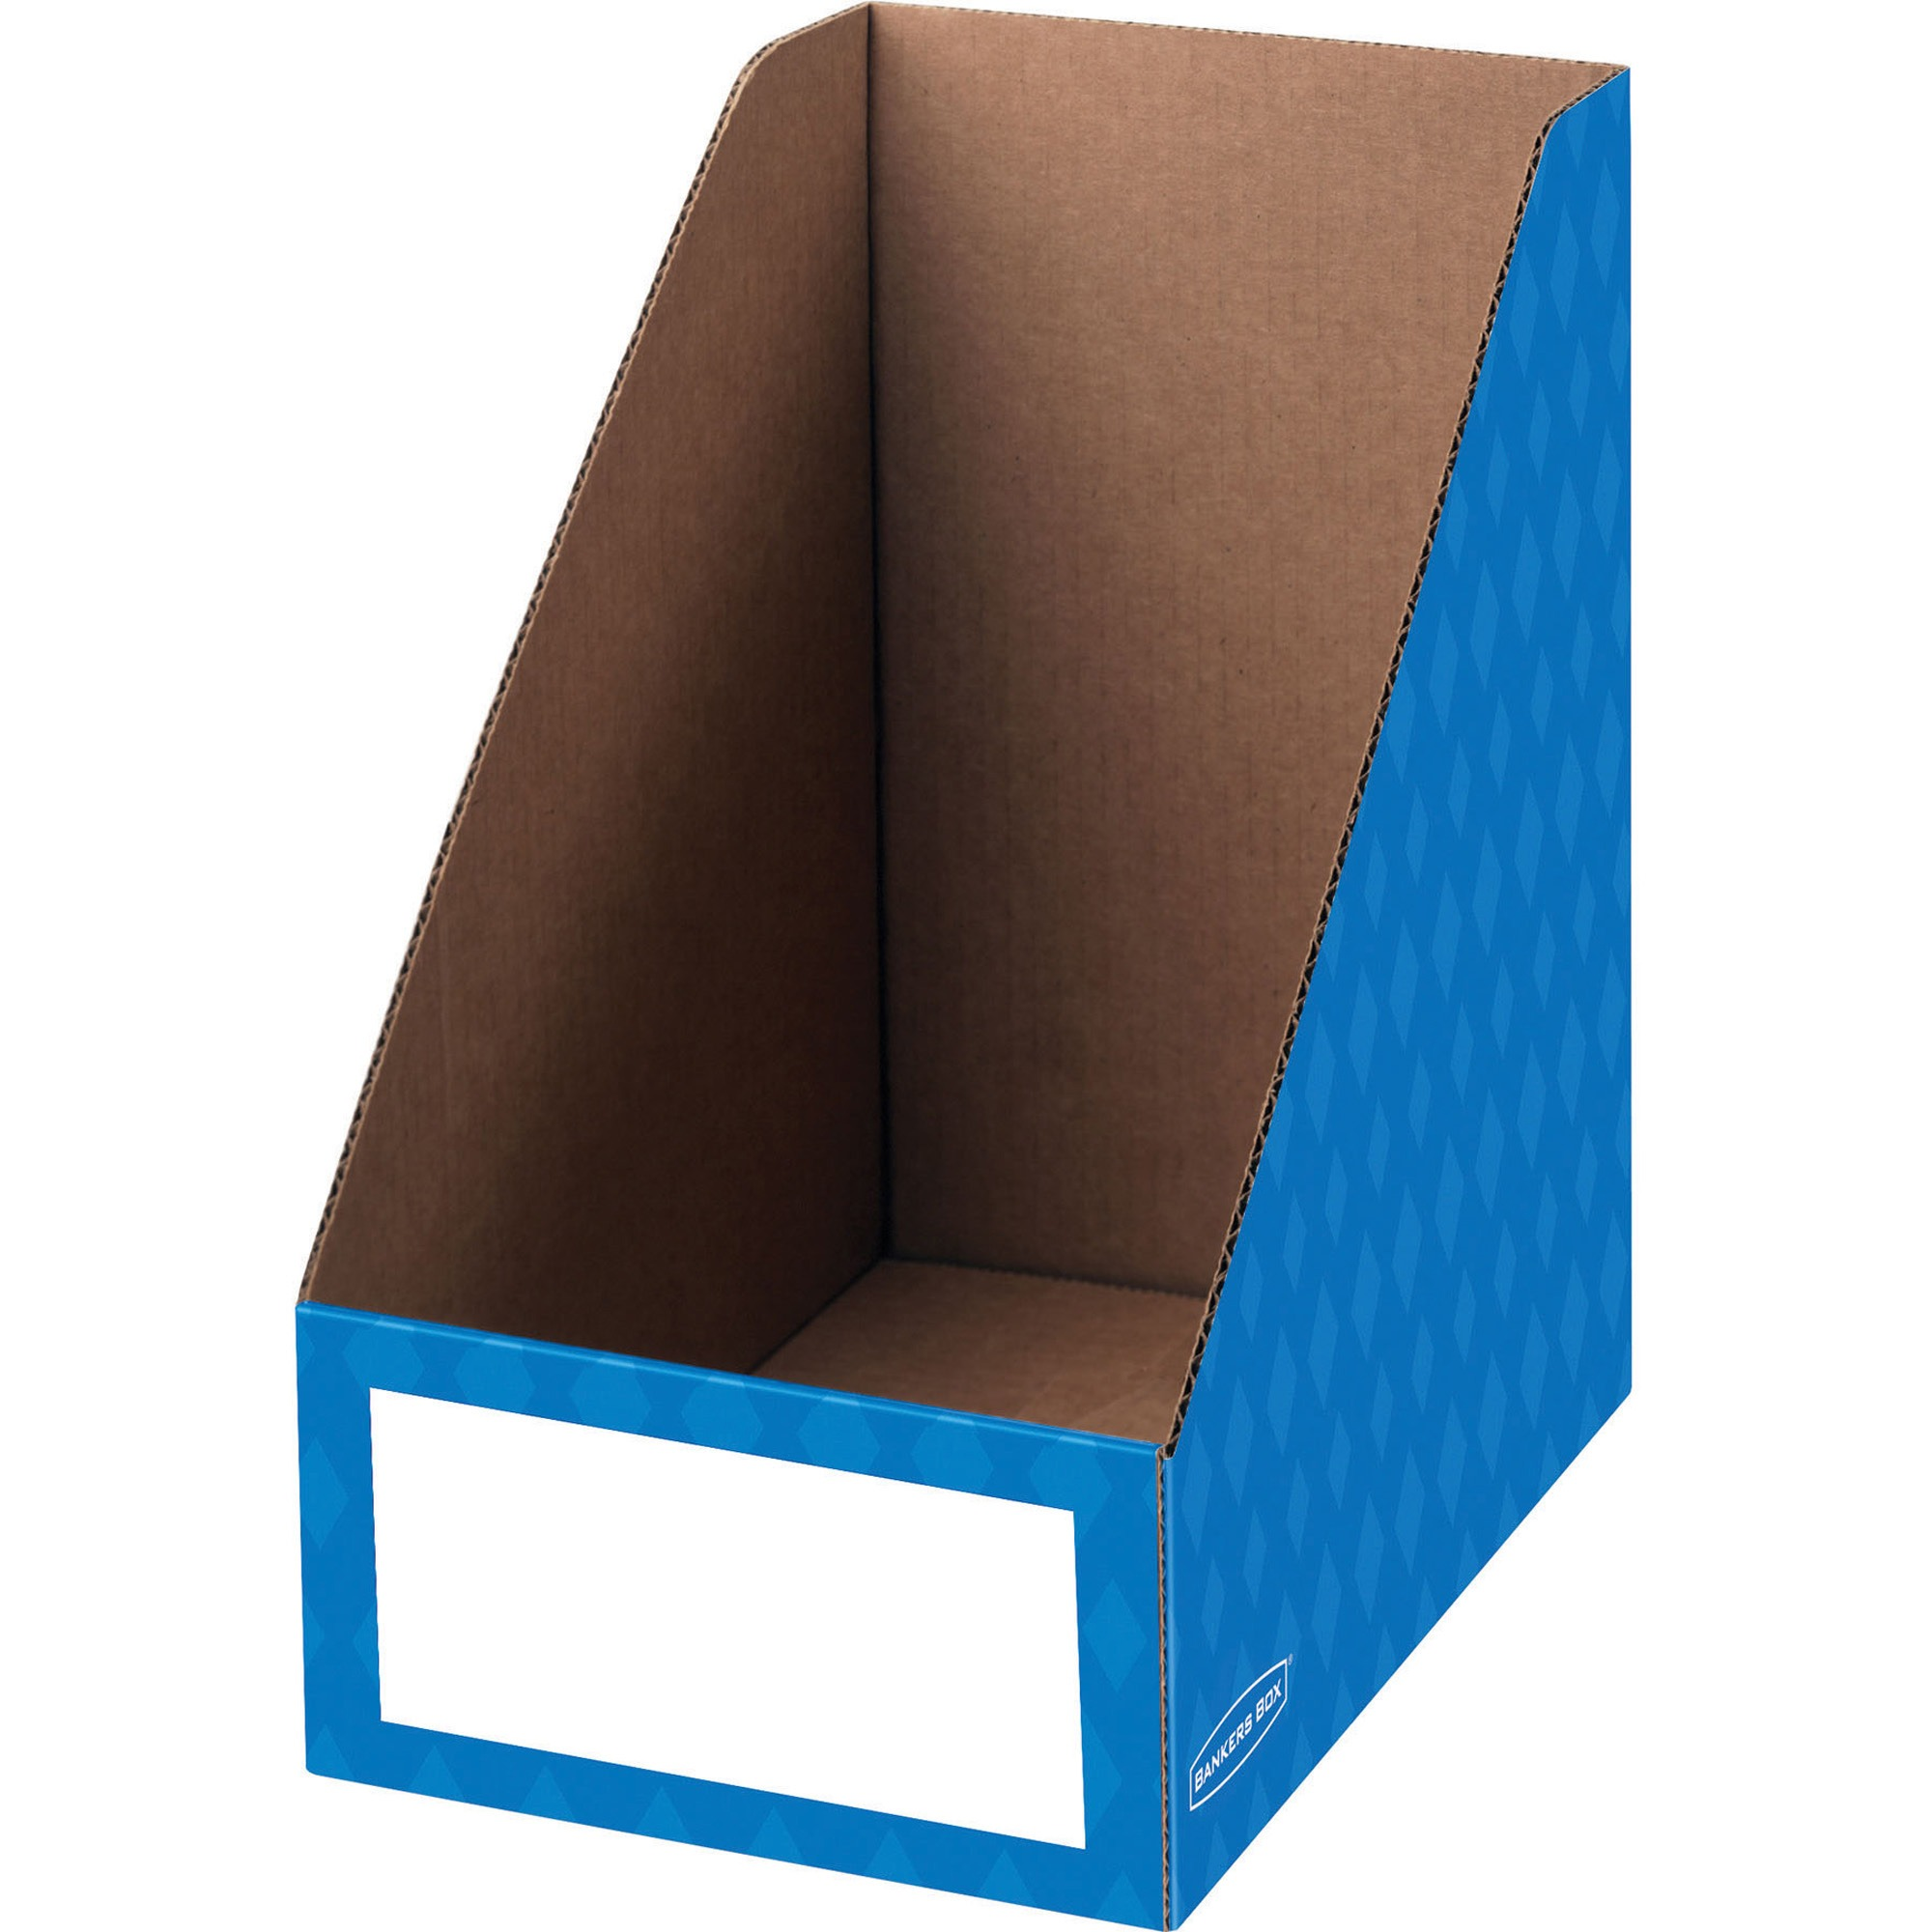 "Fellowes Banker's Box 8"" Magazine File Holder, Blue, 3pk"